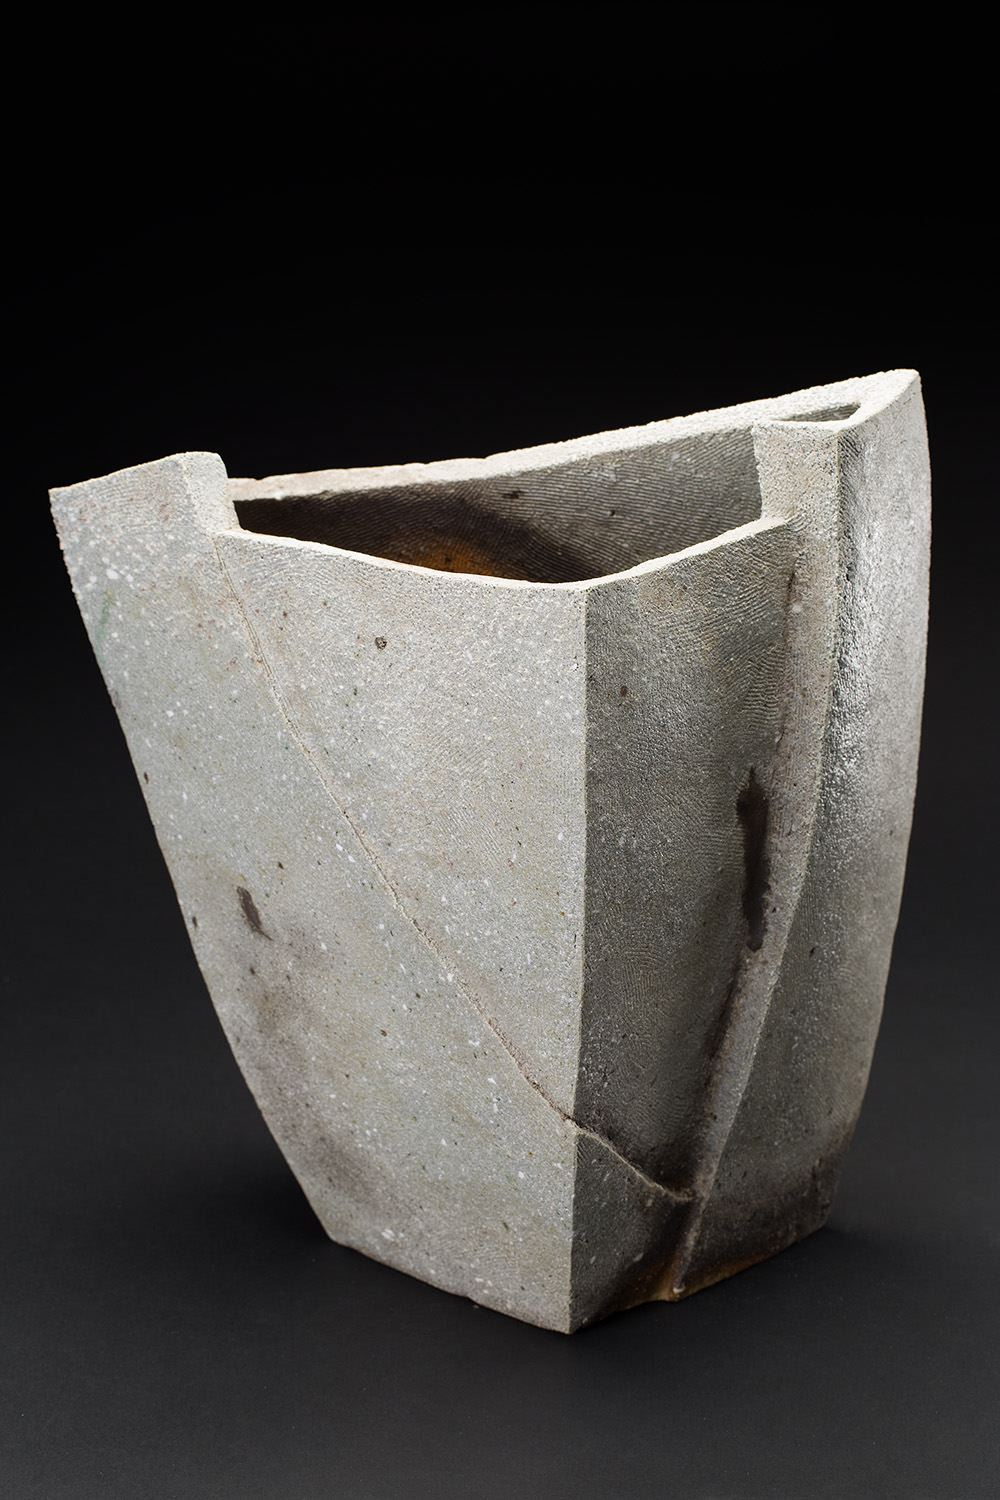 Tim Rowan Untitled, 2016 Woodfired ceramic 16.5 x 15 x 10 inches 41.9 x 38.1 x 25.4 cm TR 161